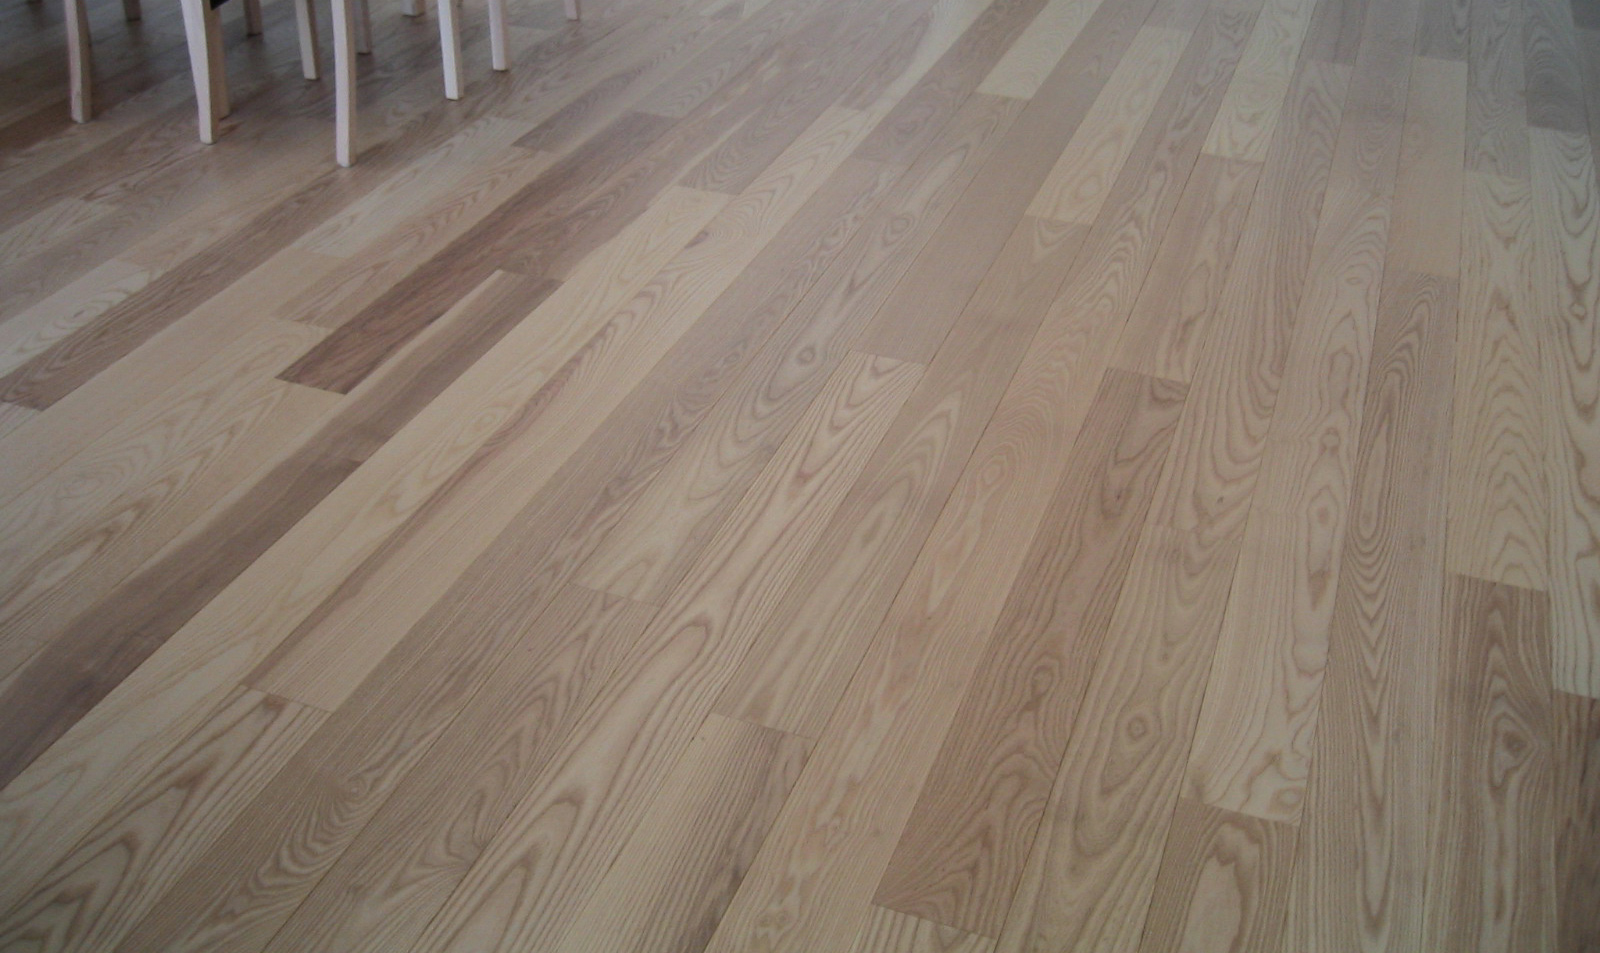 Ash flooring floors doors interior design for Unfinished wood flooring